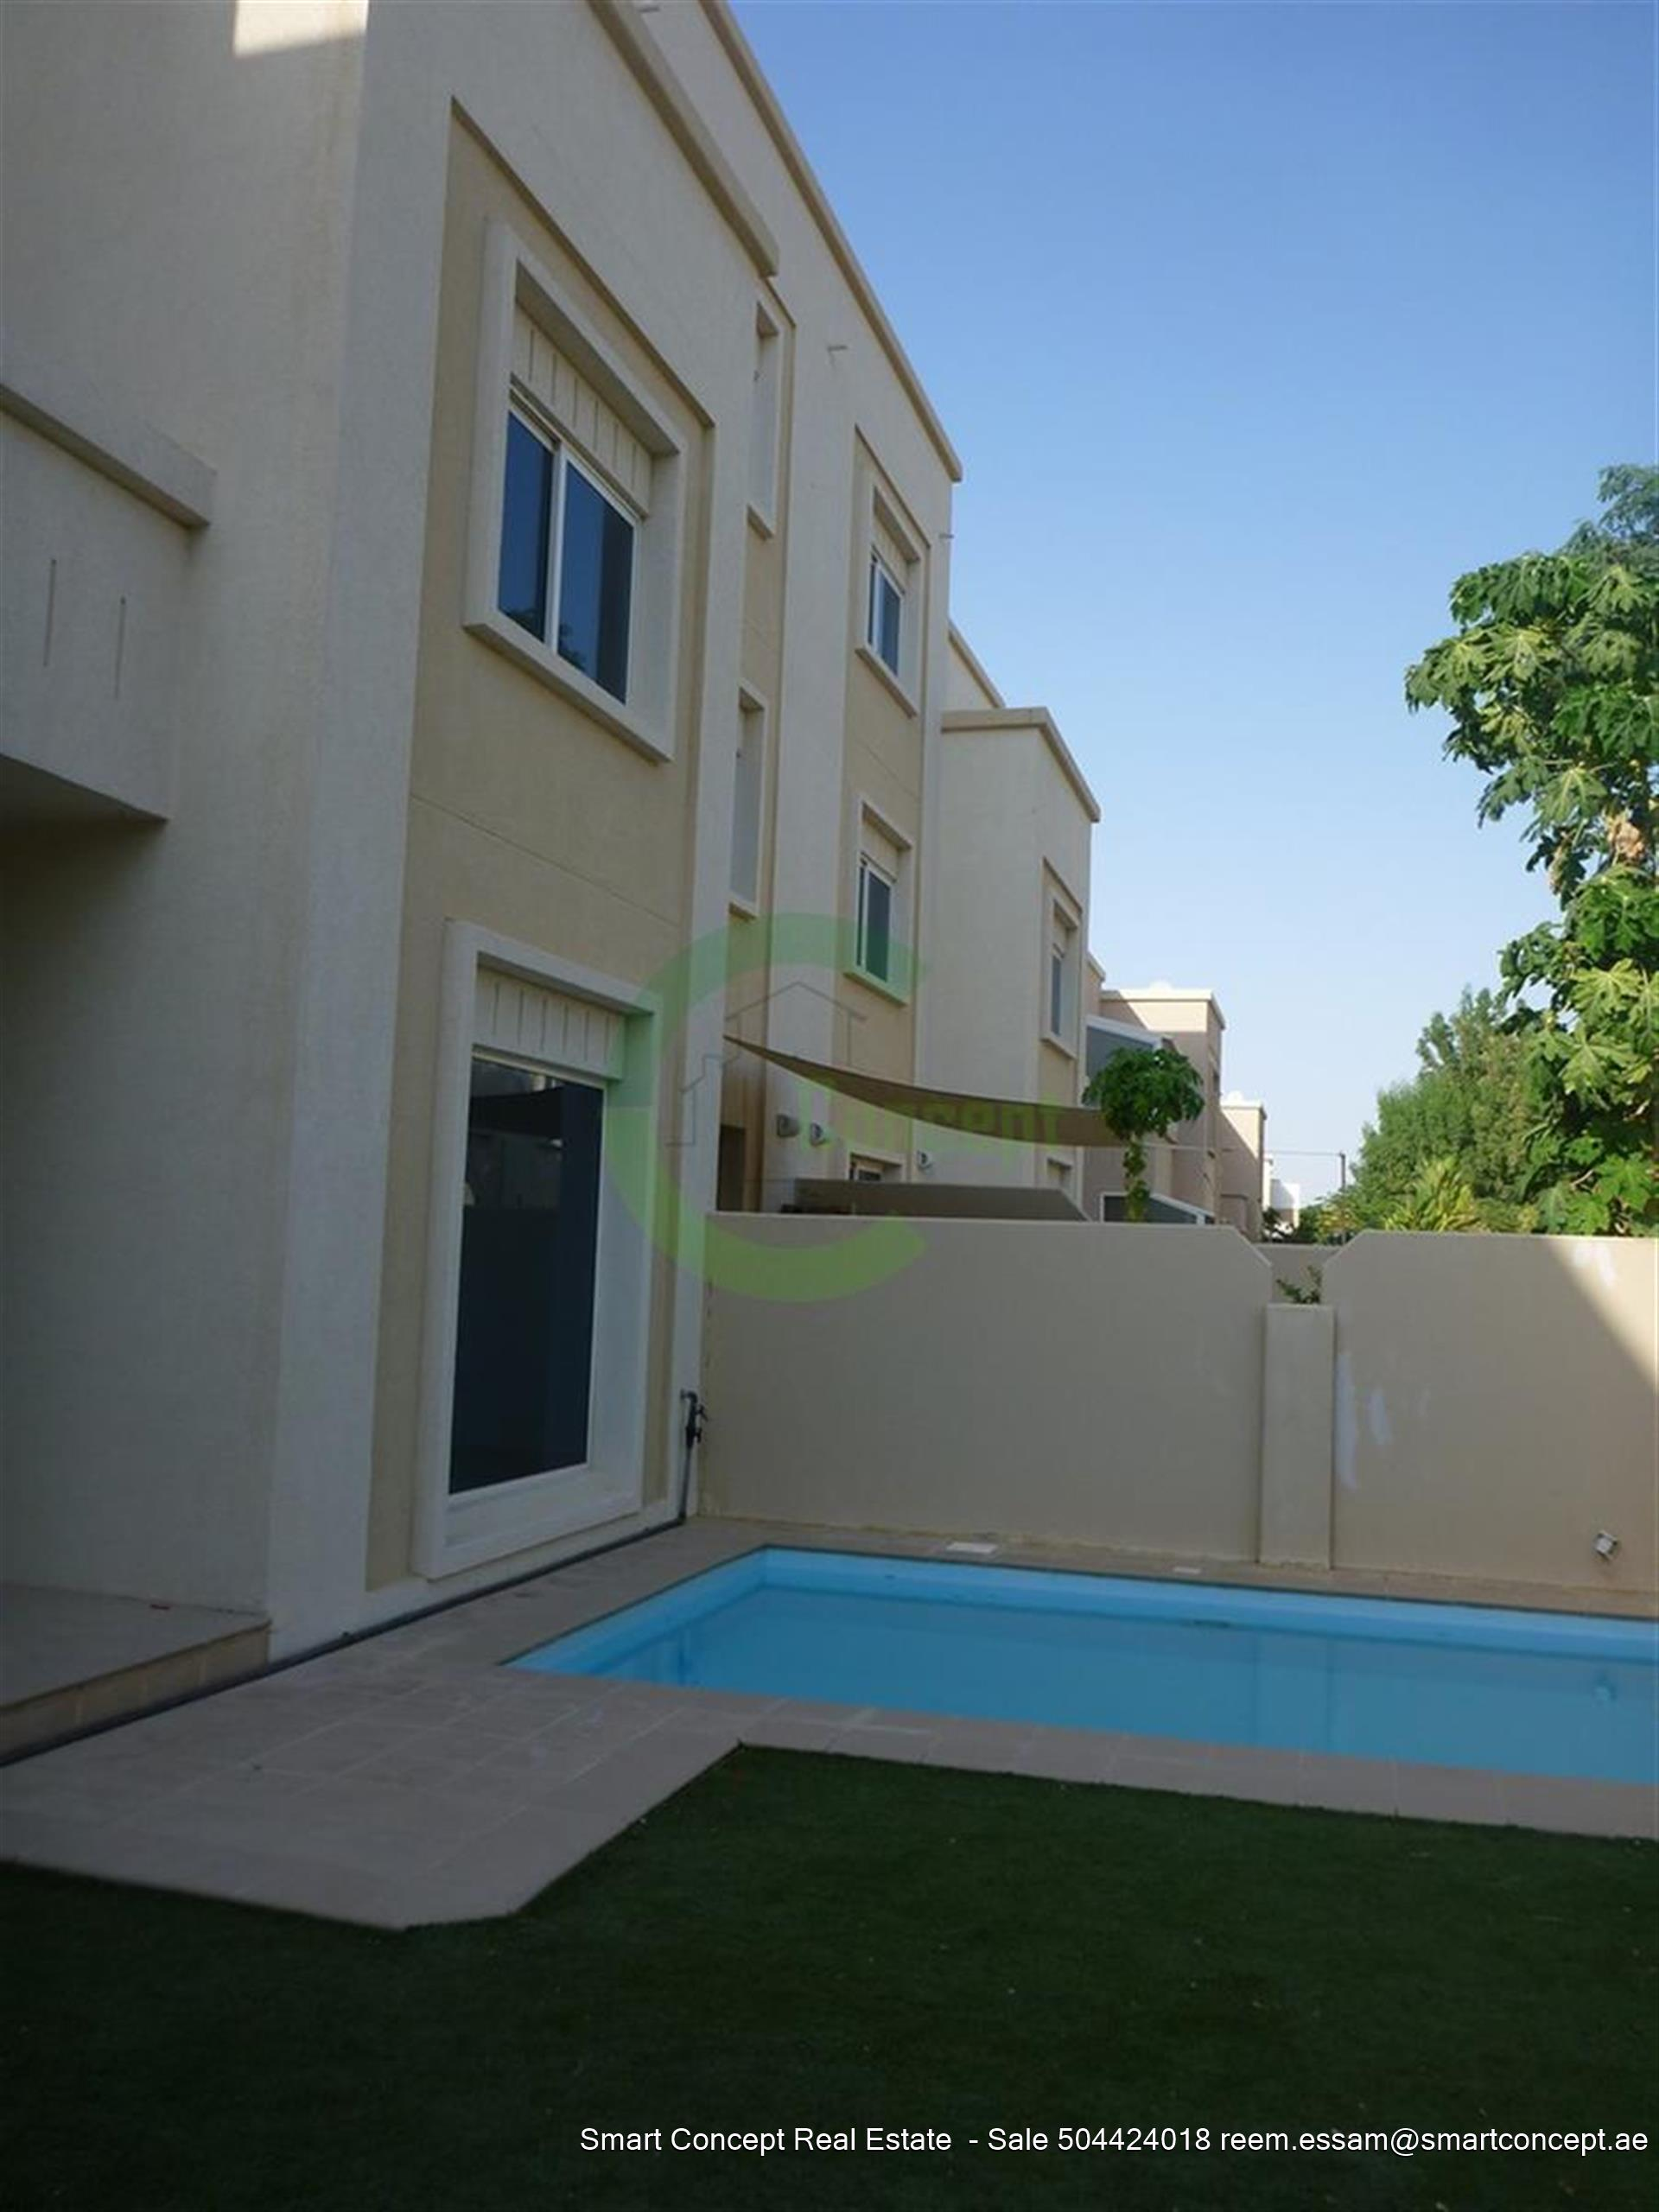 Great Offer ! 5br Villa Upto 4 Payments